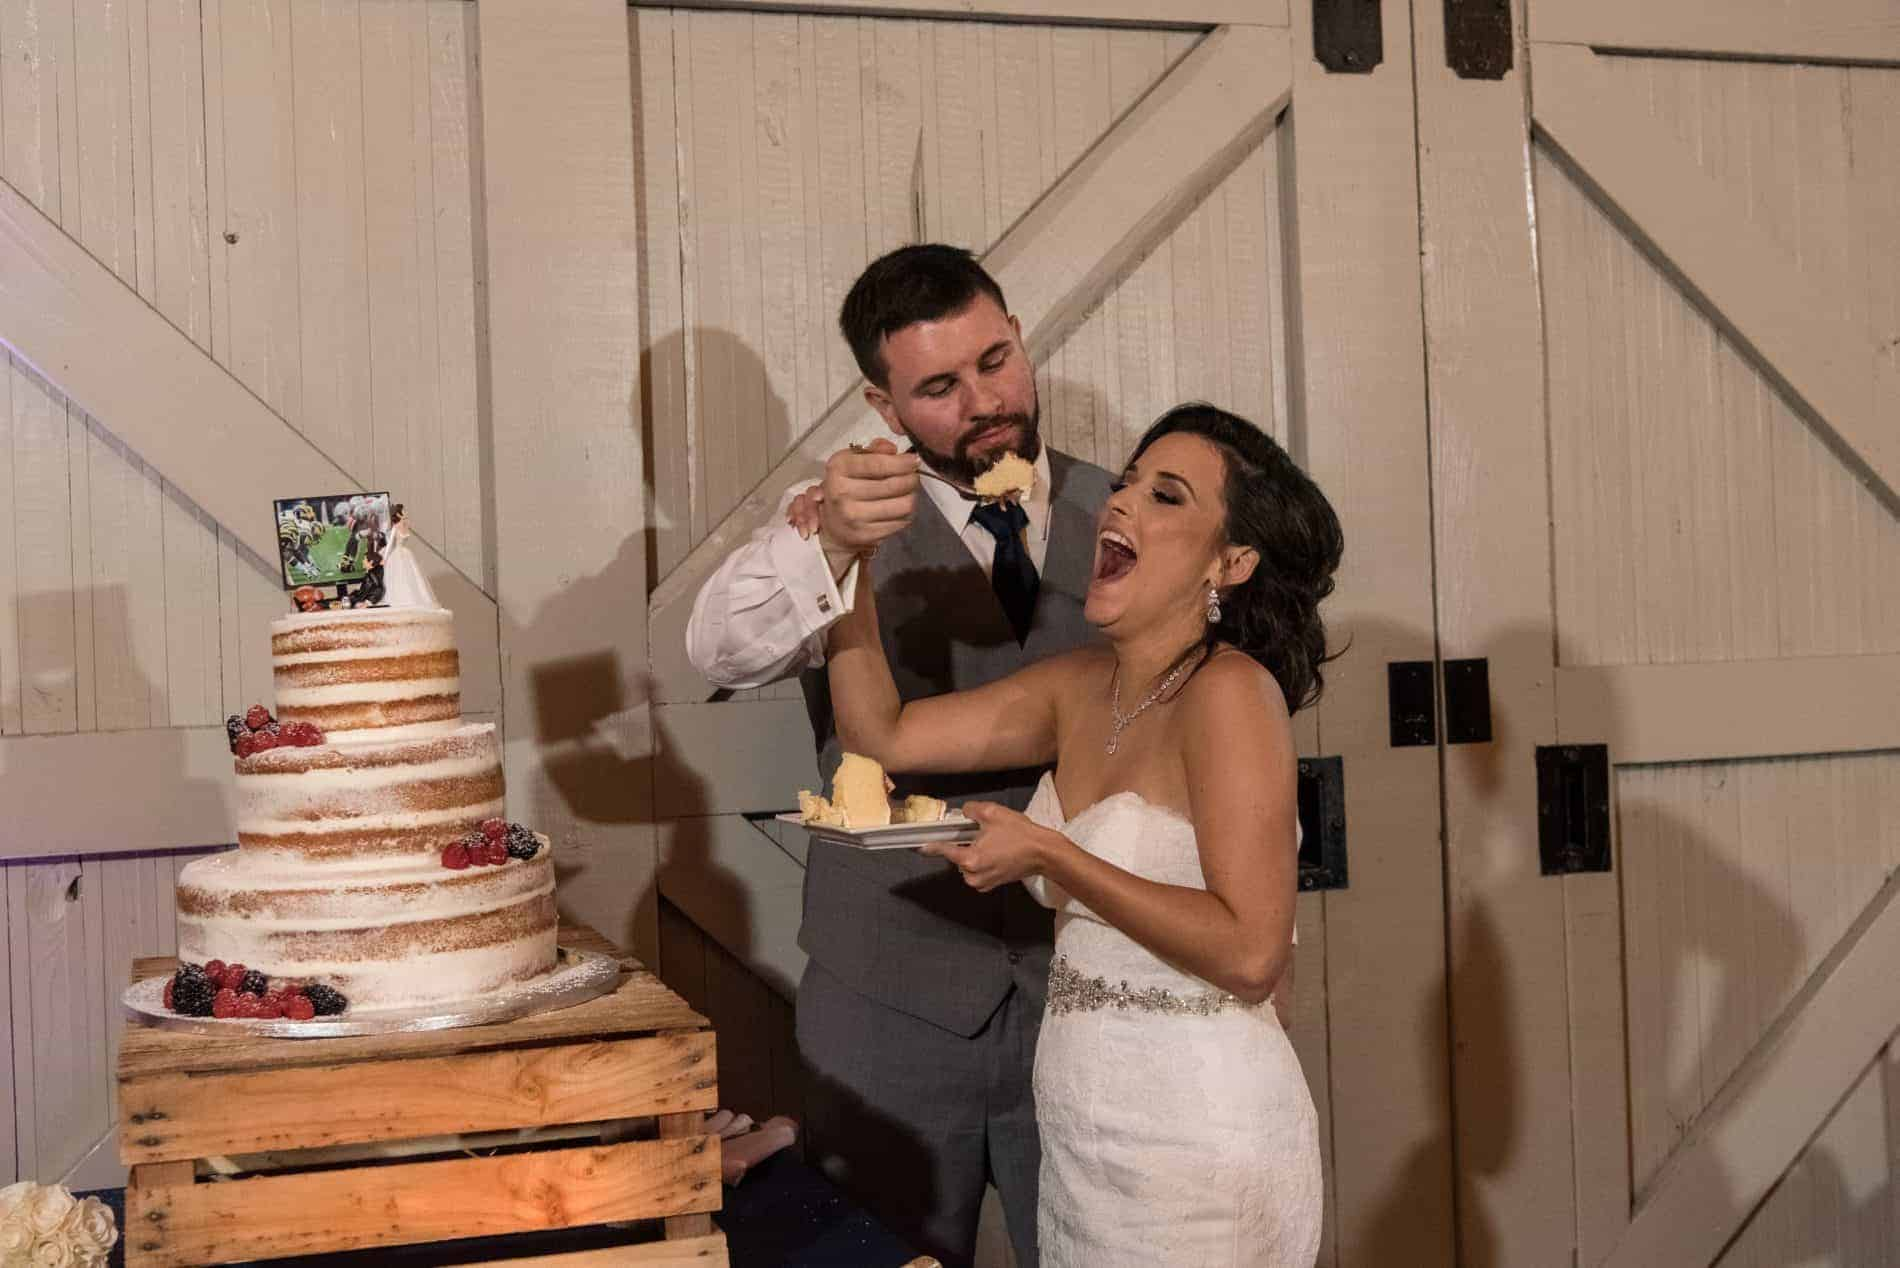 Bride and Groom Cut the Cake at a Rustic Farmers Market Wedding Reception